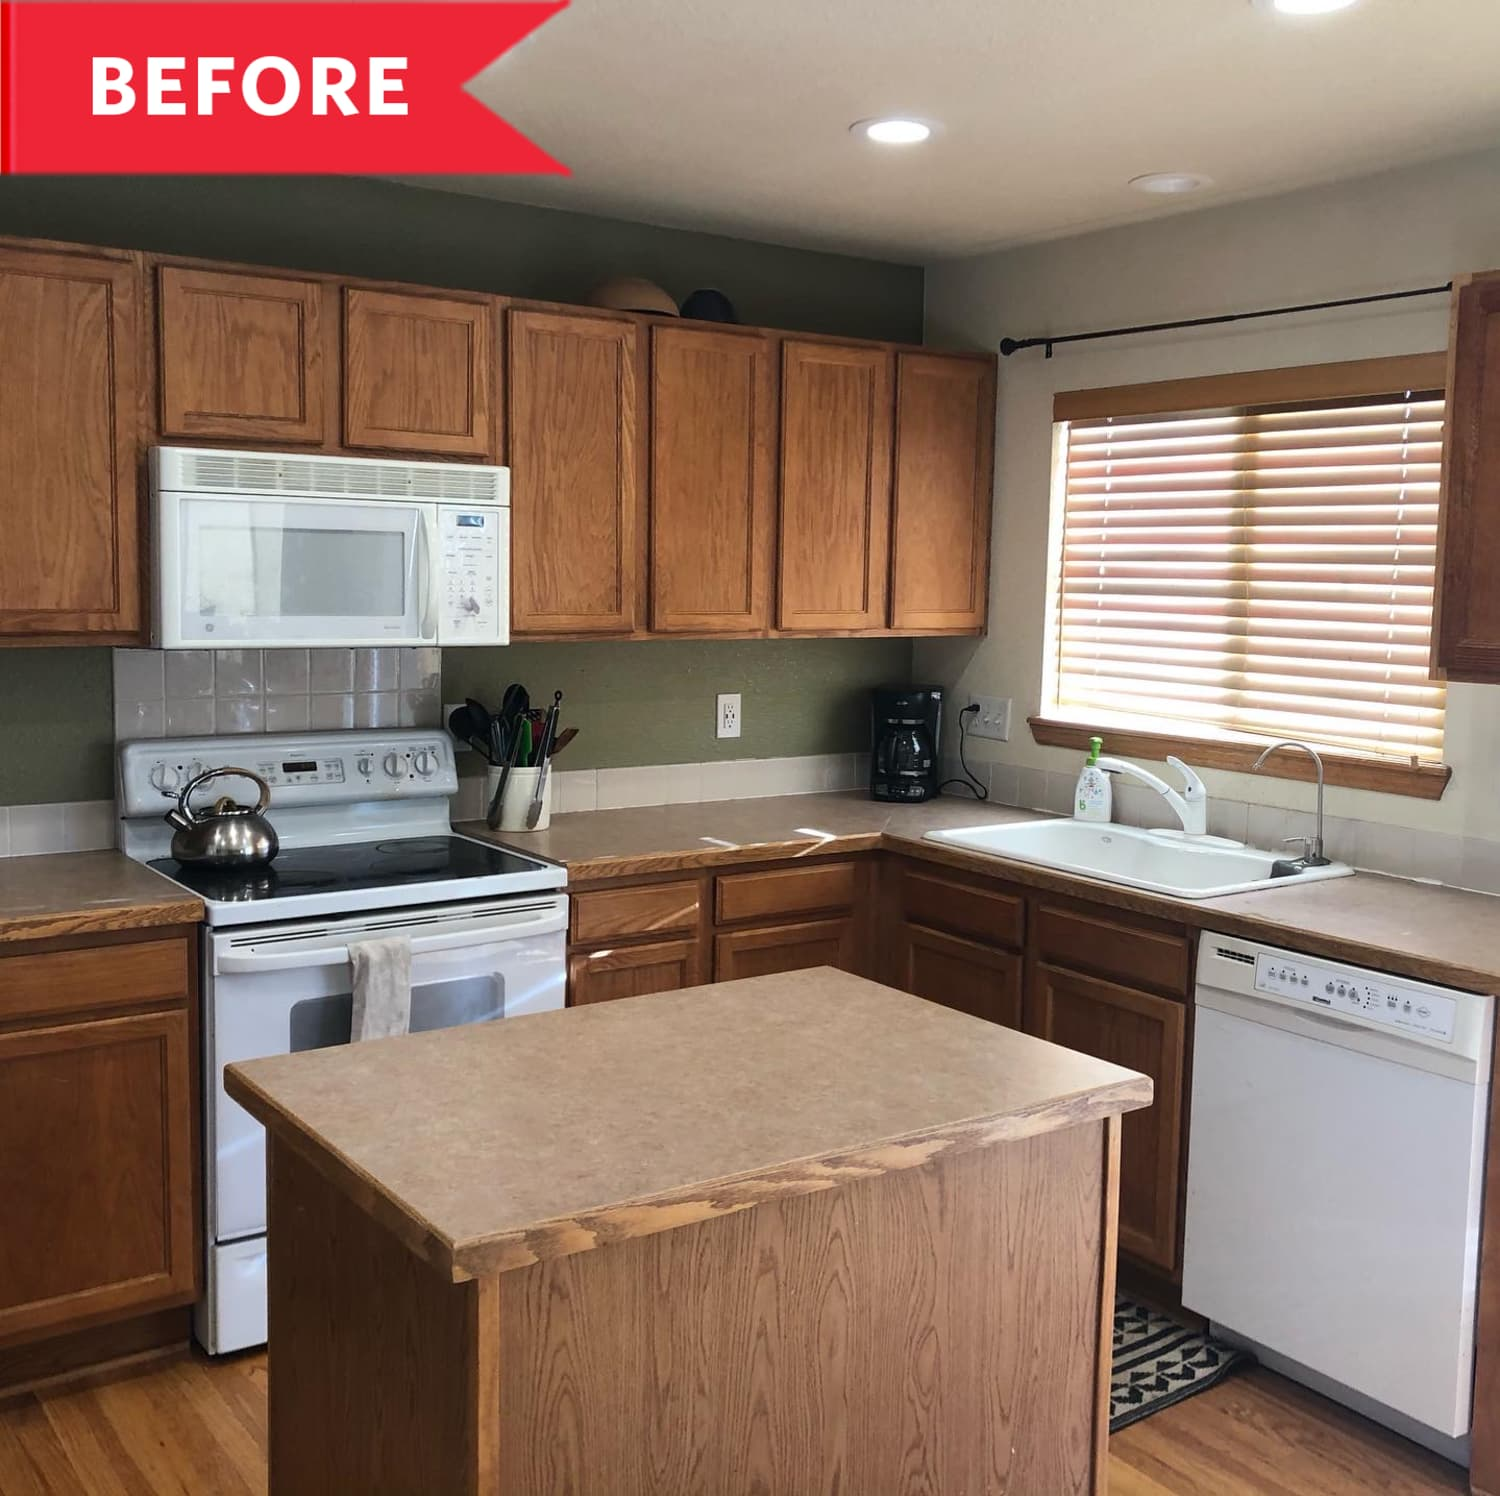 Before & After: A Dated Kitchen from the Early 2000s Gets a Sophisticated Revamp for $8,500